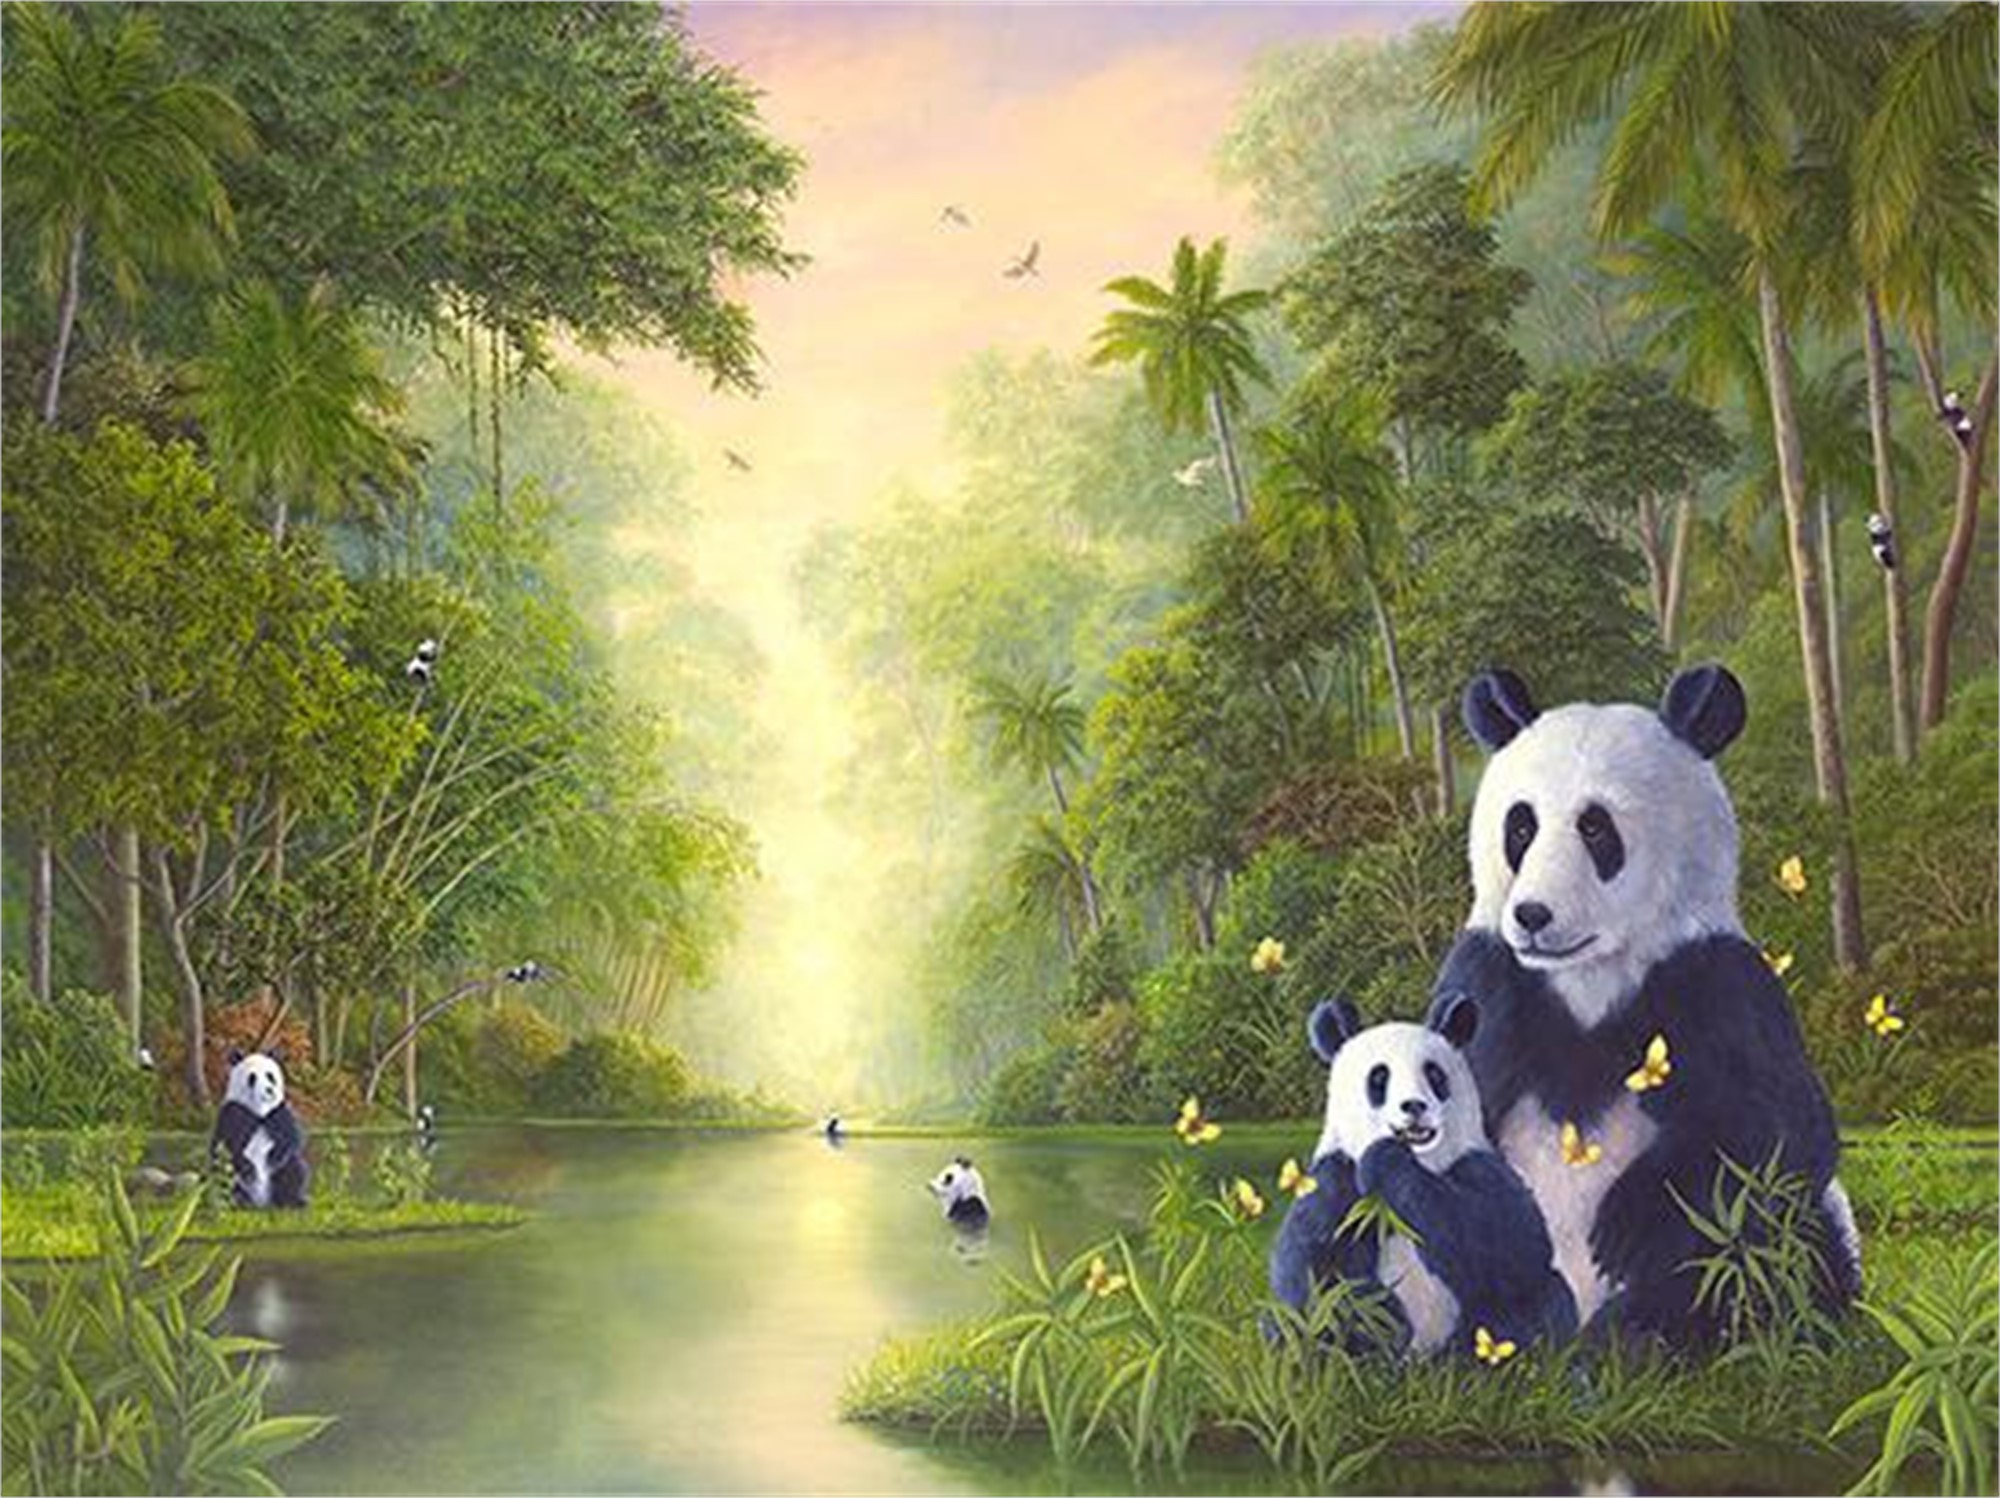 Bamboo River, The (Small Works) by Robert Bissell